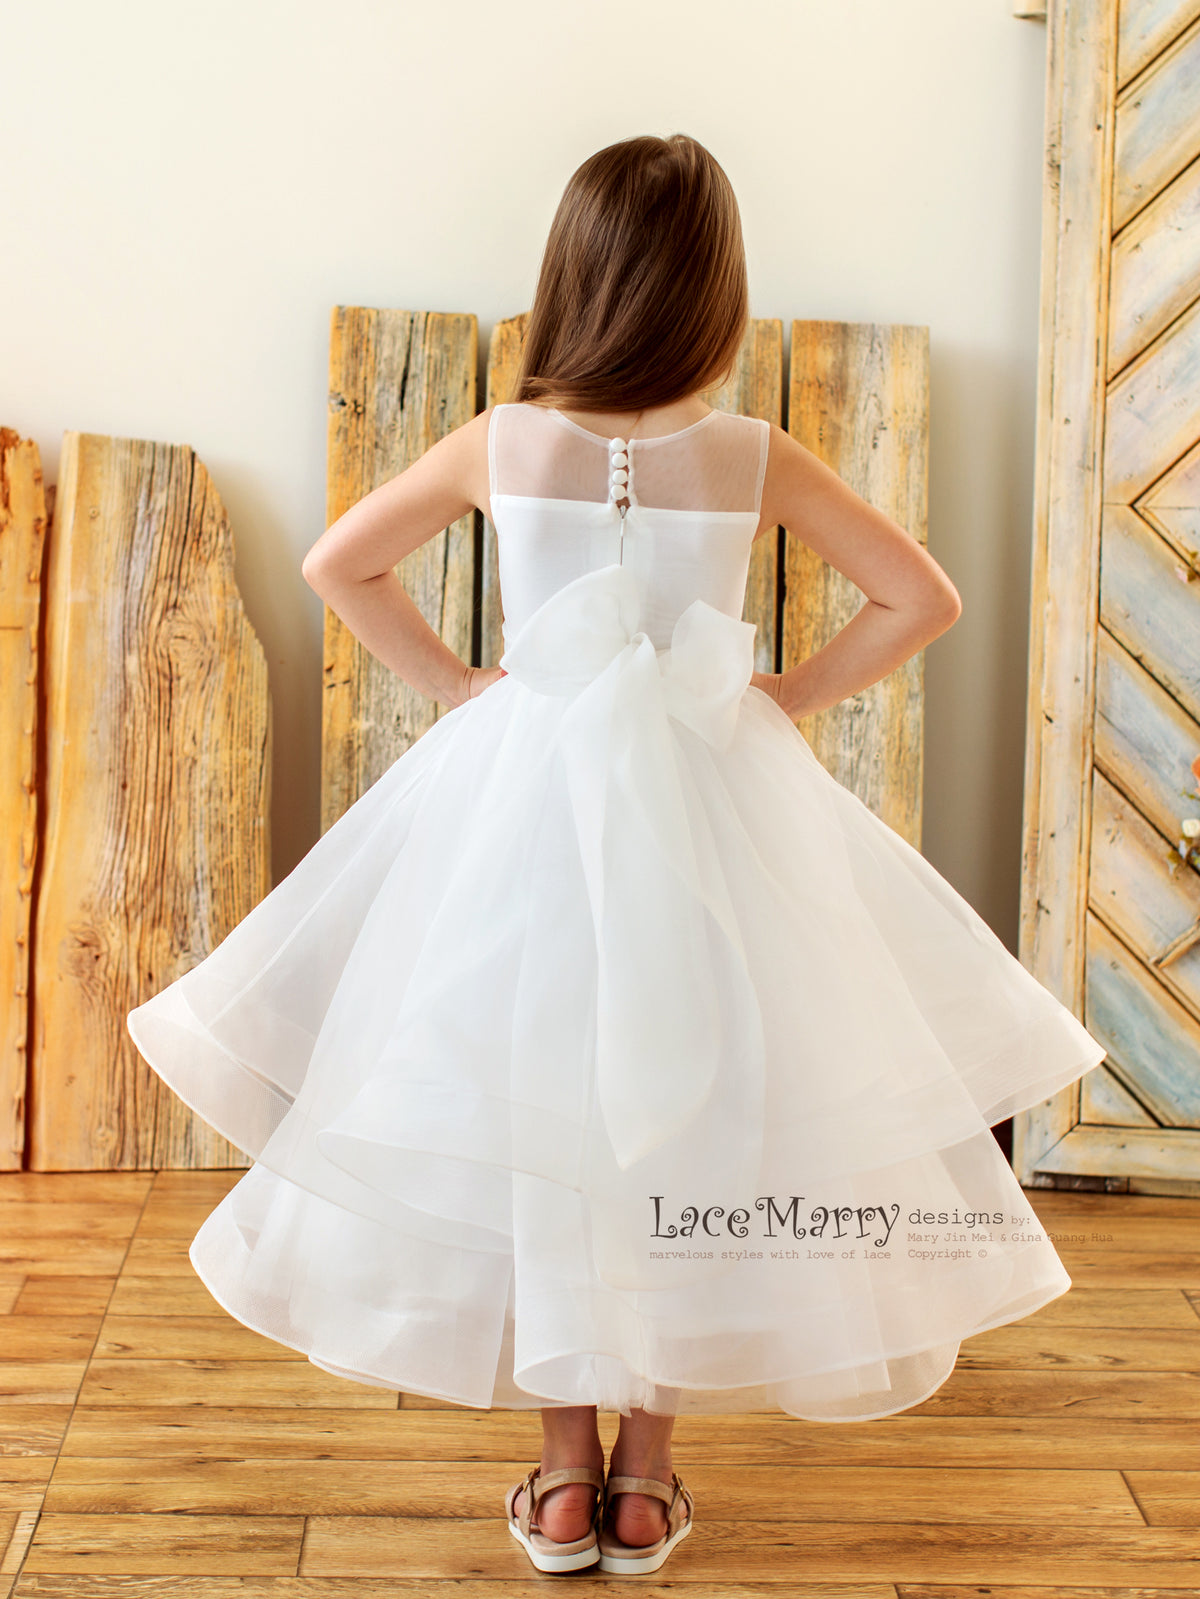 Large Bow and Big Skirt Little Girl Dress